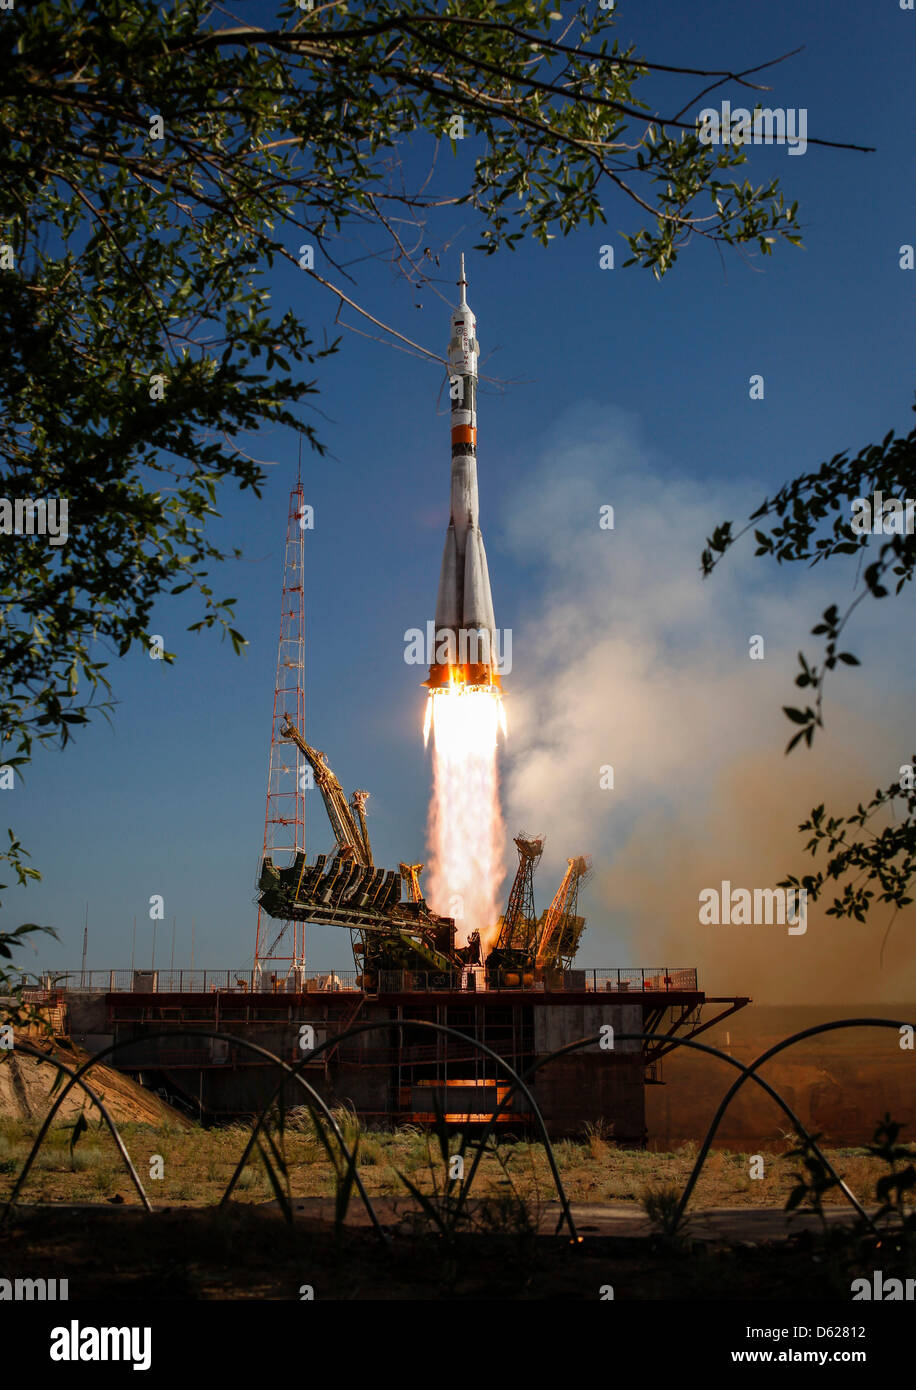 The Soyuz TMA-04M rocket launches from the Baikonur Cosmodrome in Kazakhstan on Tuesday, May 15, 2012 carrying Expedition - Stock Image